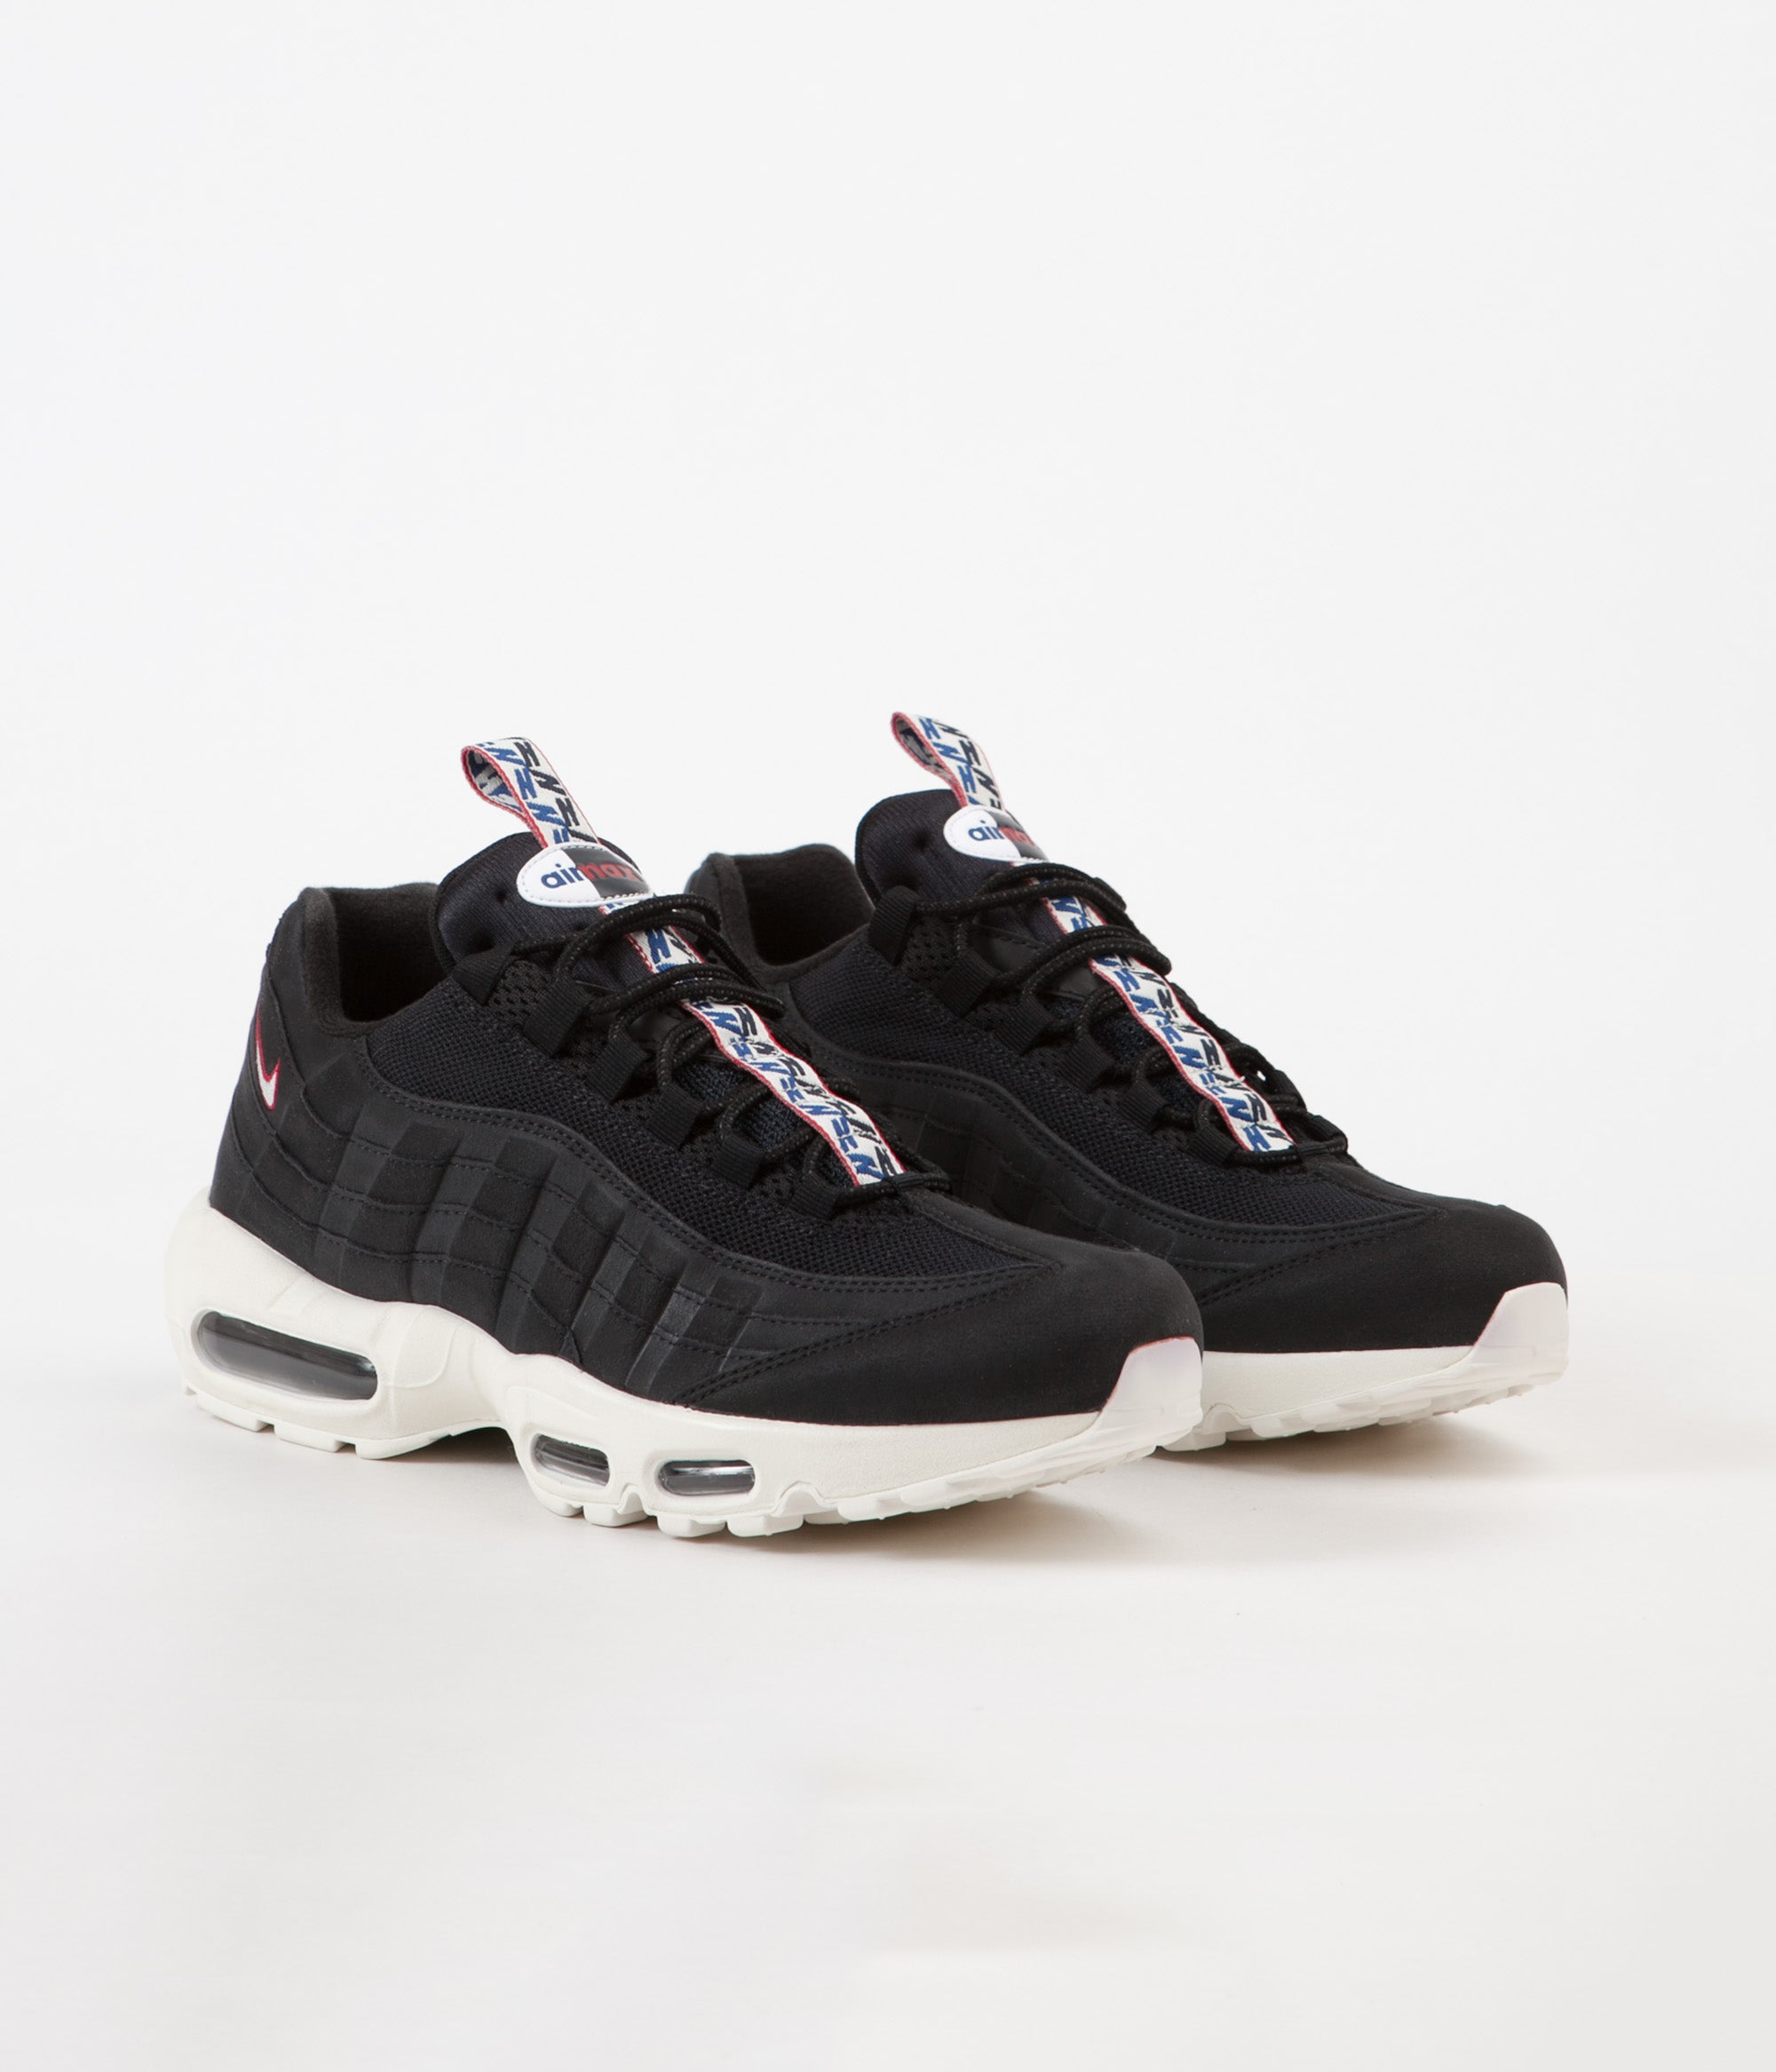 55a4724db7 Nike Air Max 95 TT Shoes - Black / Sail - Gym Red | Always in Colour